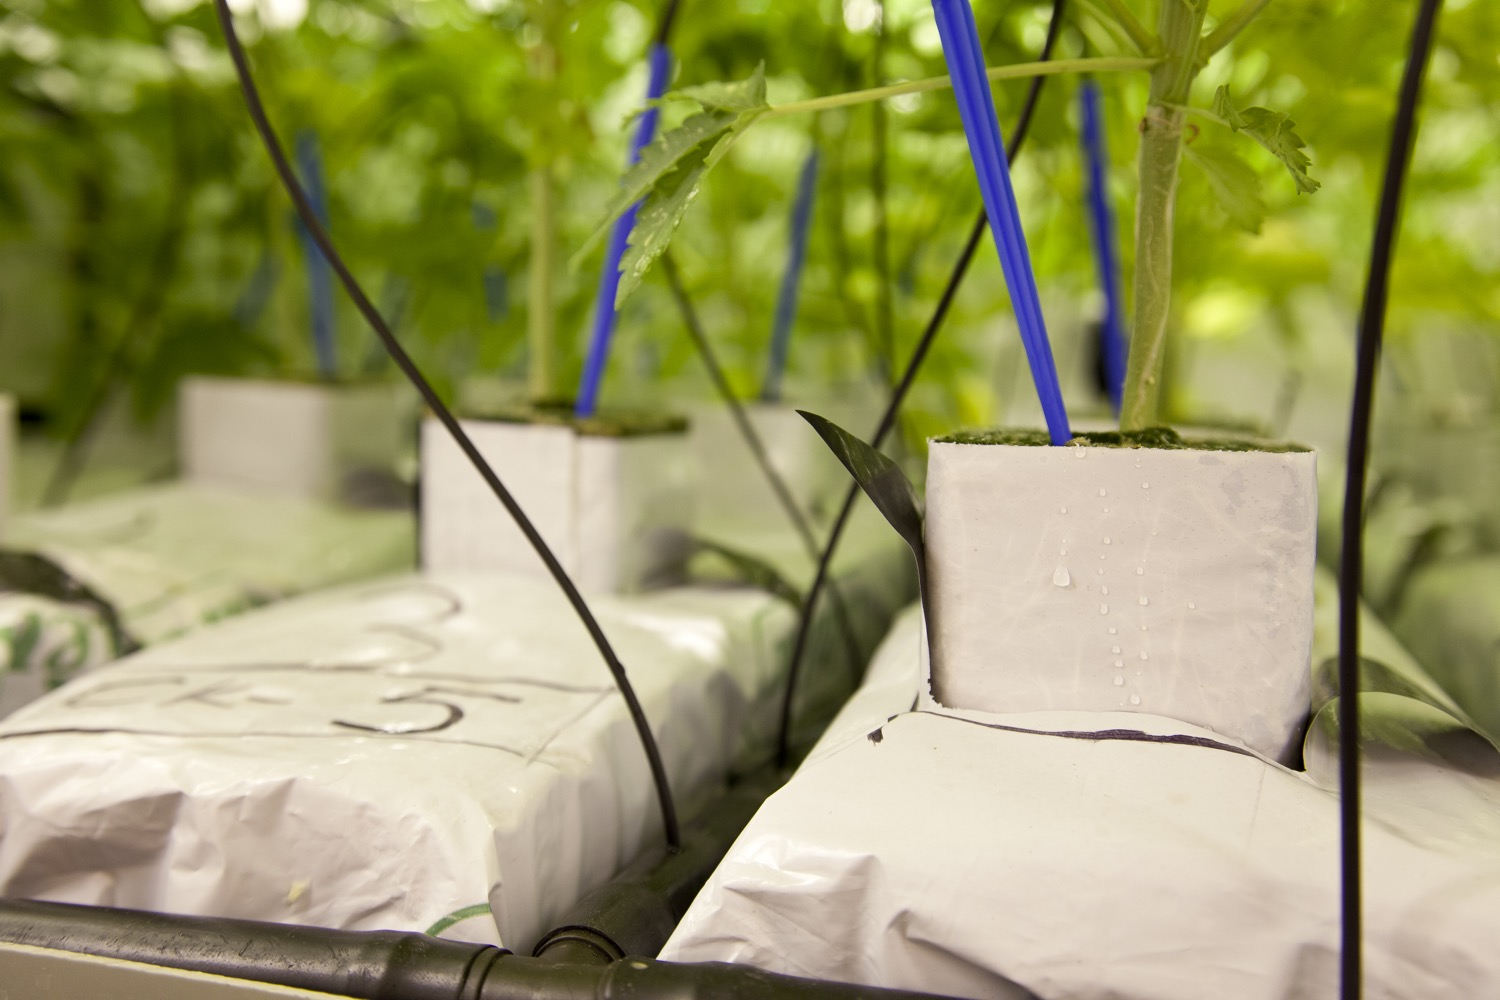 Hydroponic systems require regular cleaning